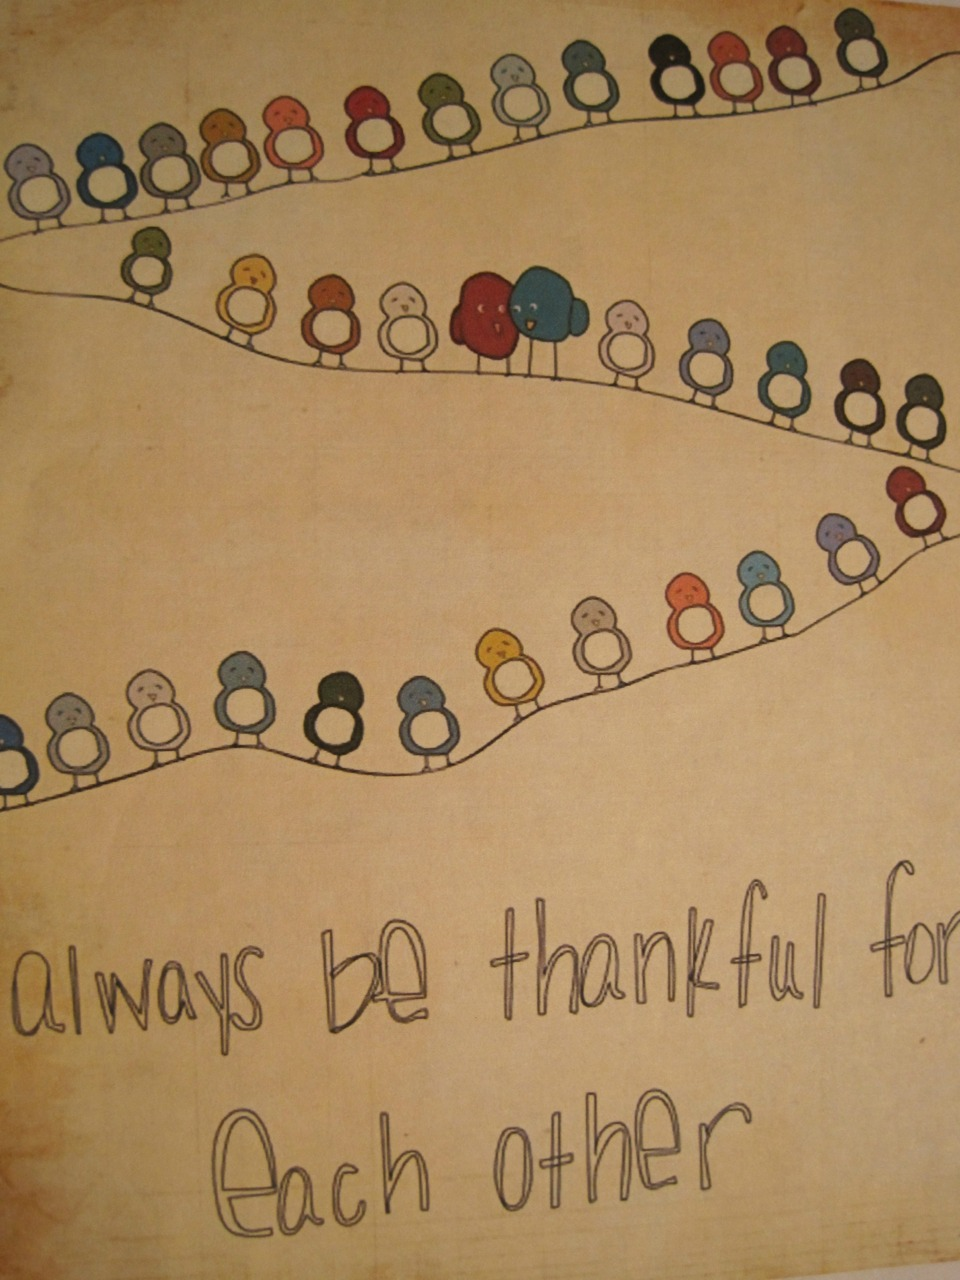 Always Be Thankful For Each Other